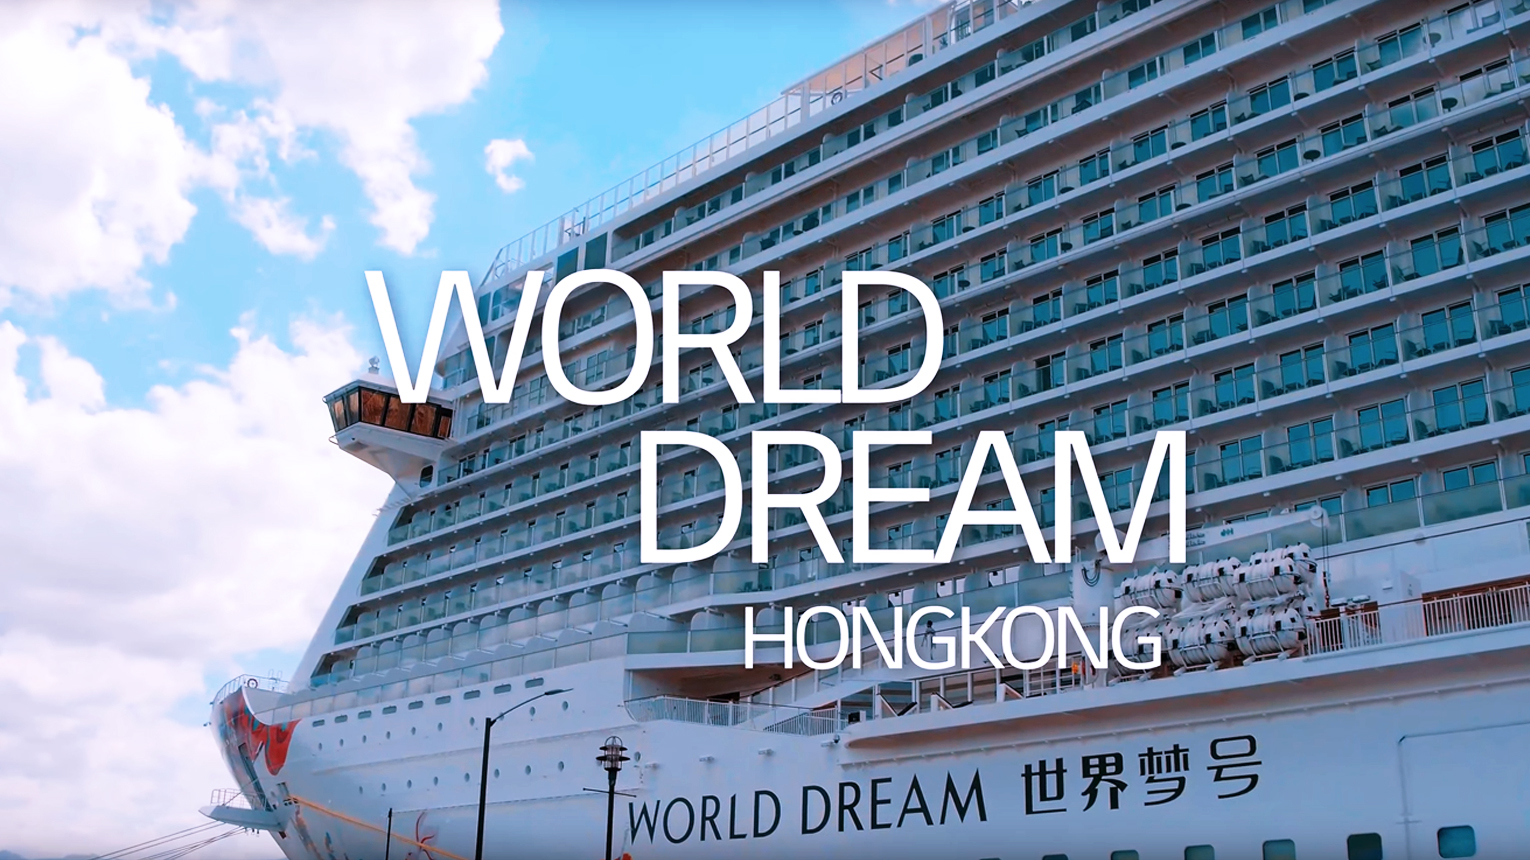 World Dream from Dream Cruises